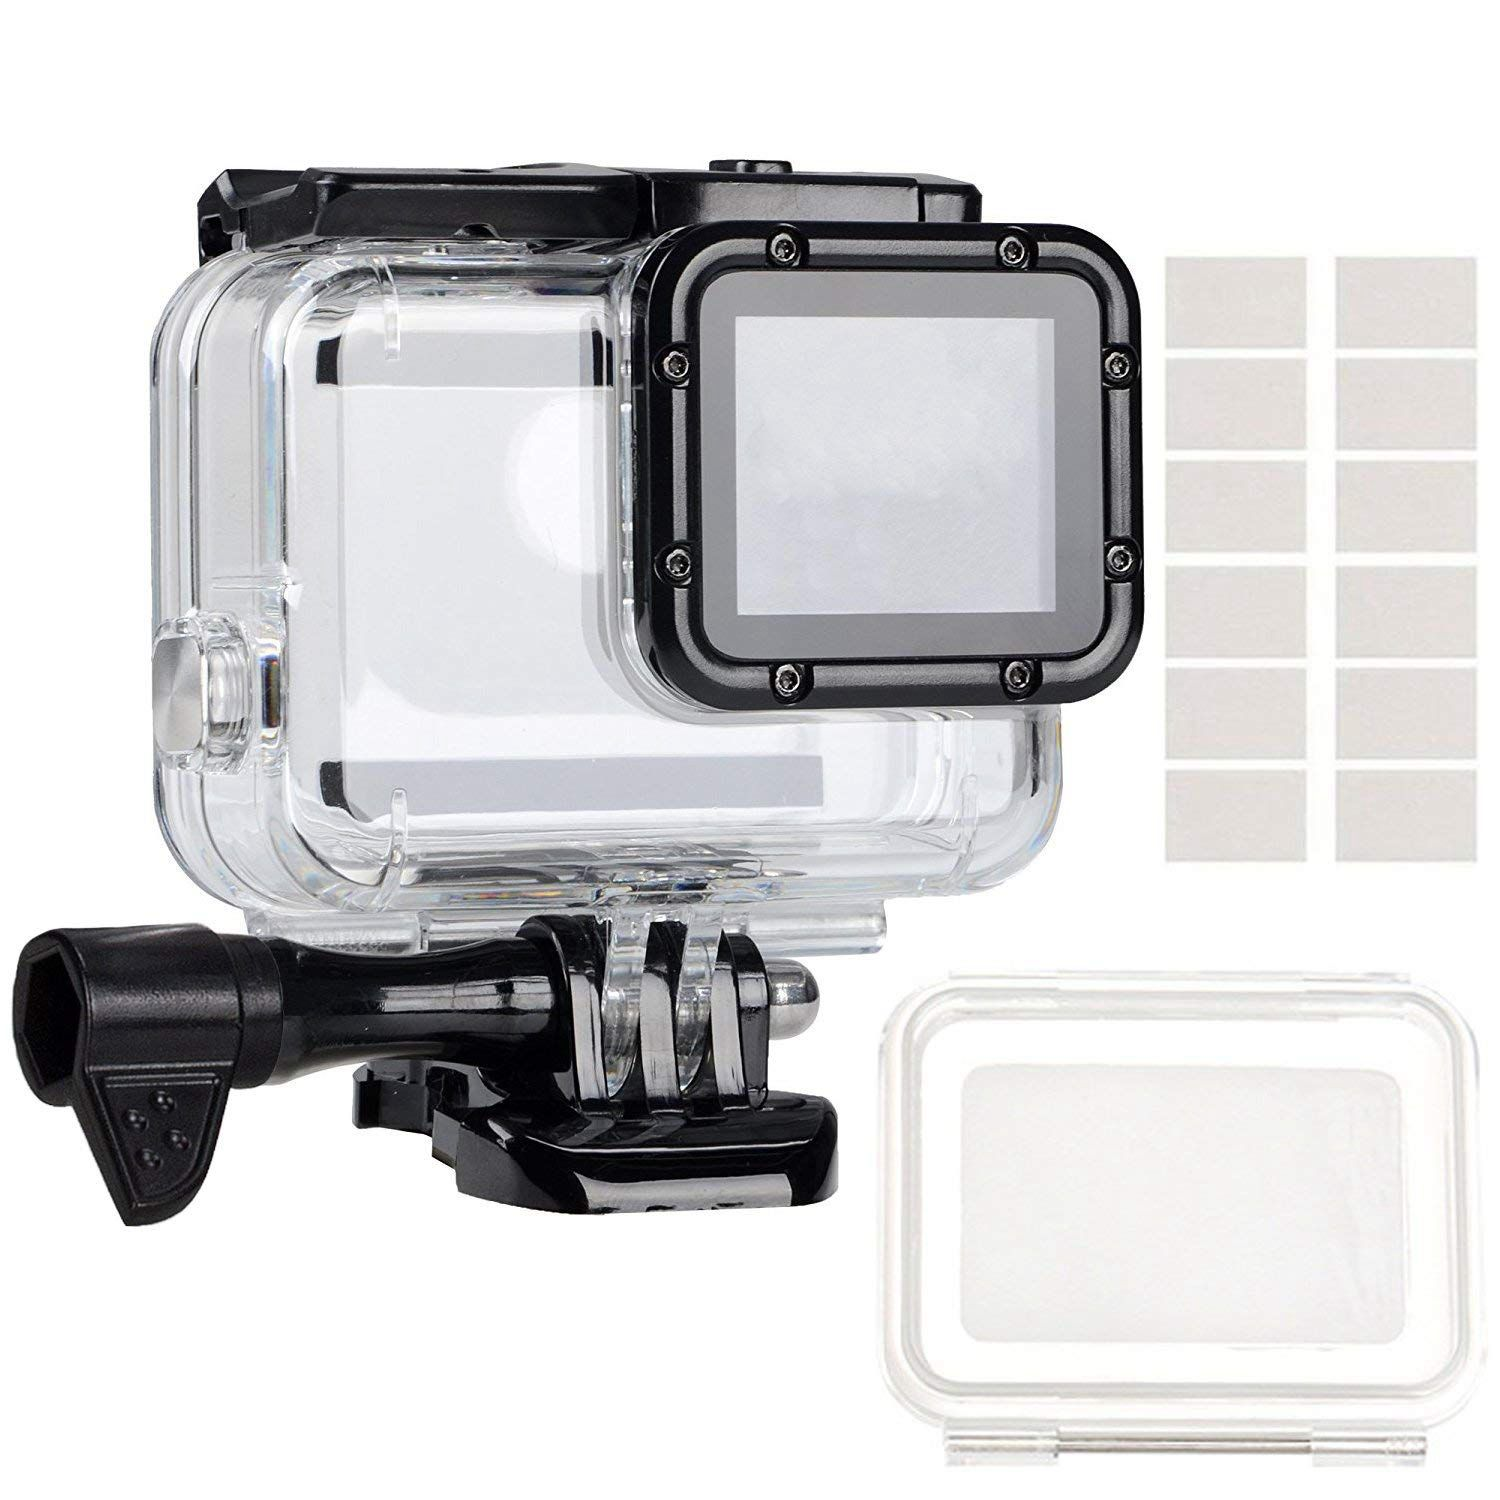 Consumer Electronics Responsible Waterproof Housing Underwater Case Dive With Touch-coverlens And Anti Fog Inserts Accessories Kit For Gopro 6/5-hot Convenience Goods Digital Gear Bags